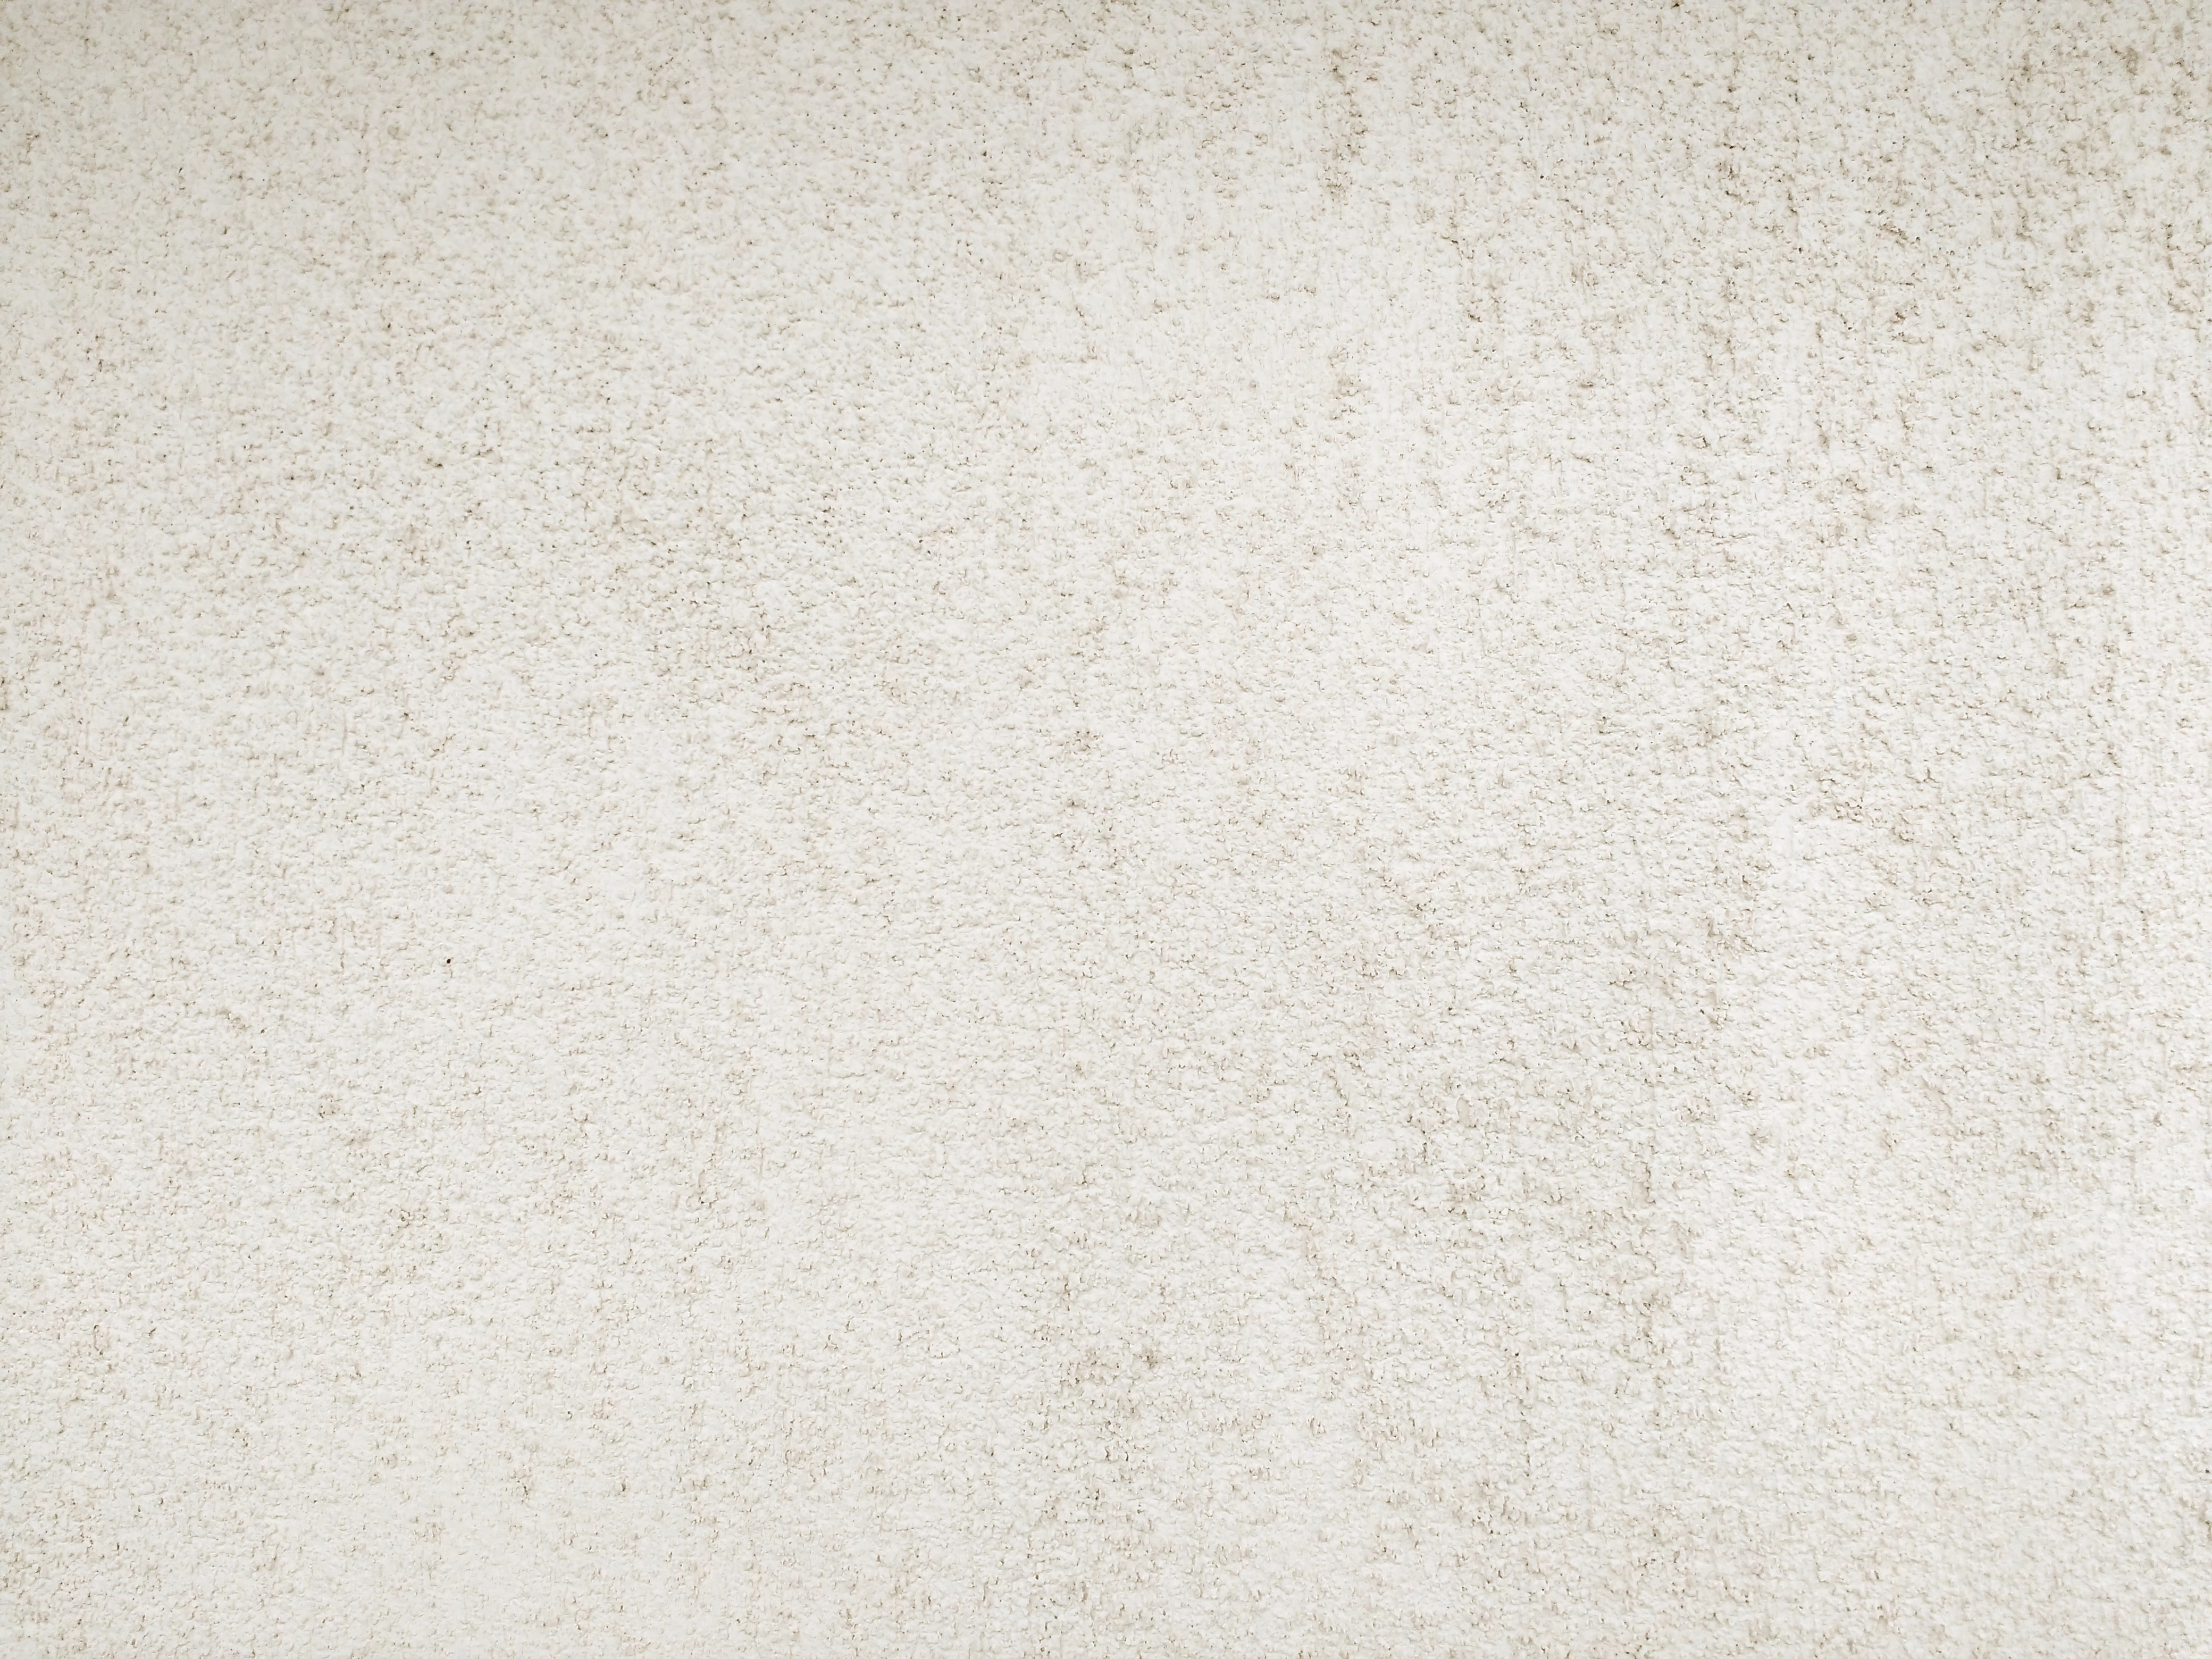 Ivory Stucco Texture Picture Free Photograph Photos